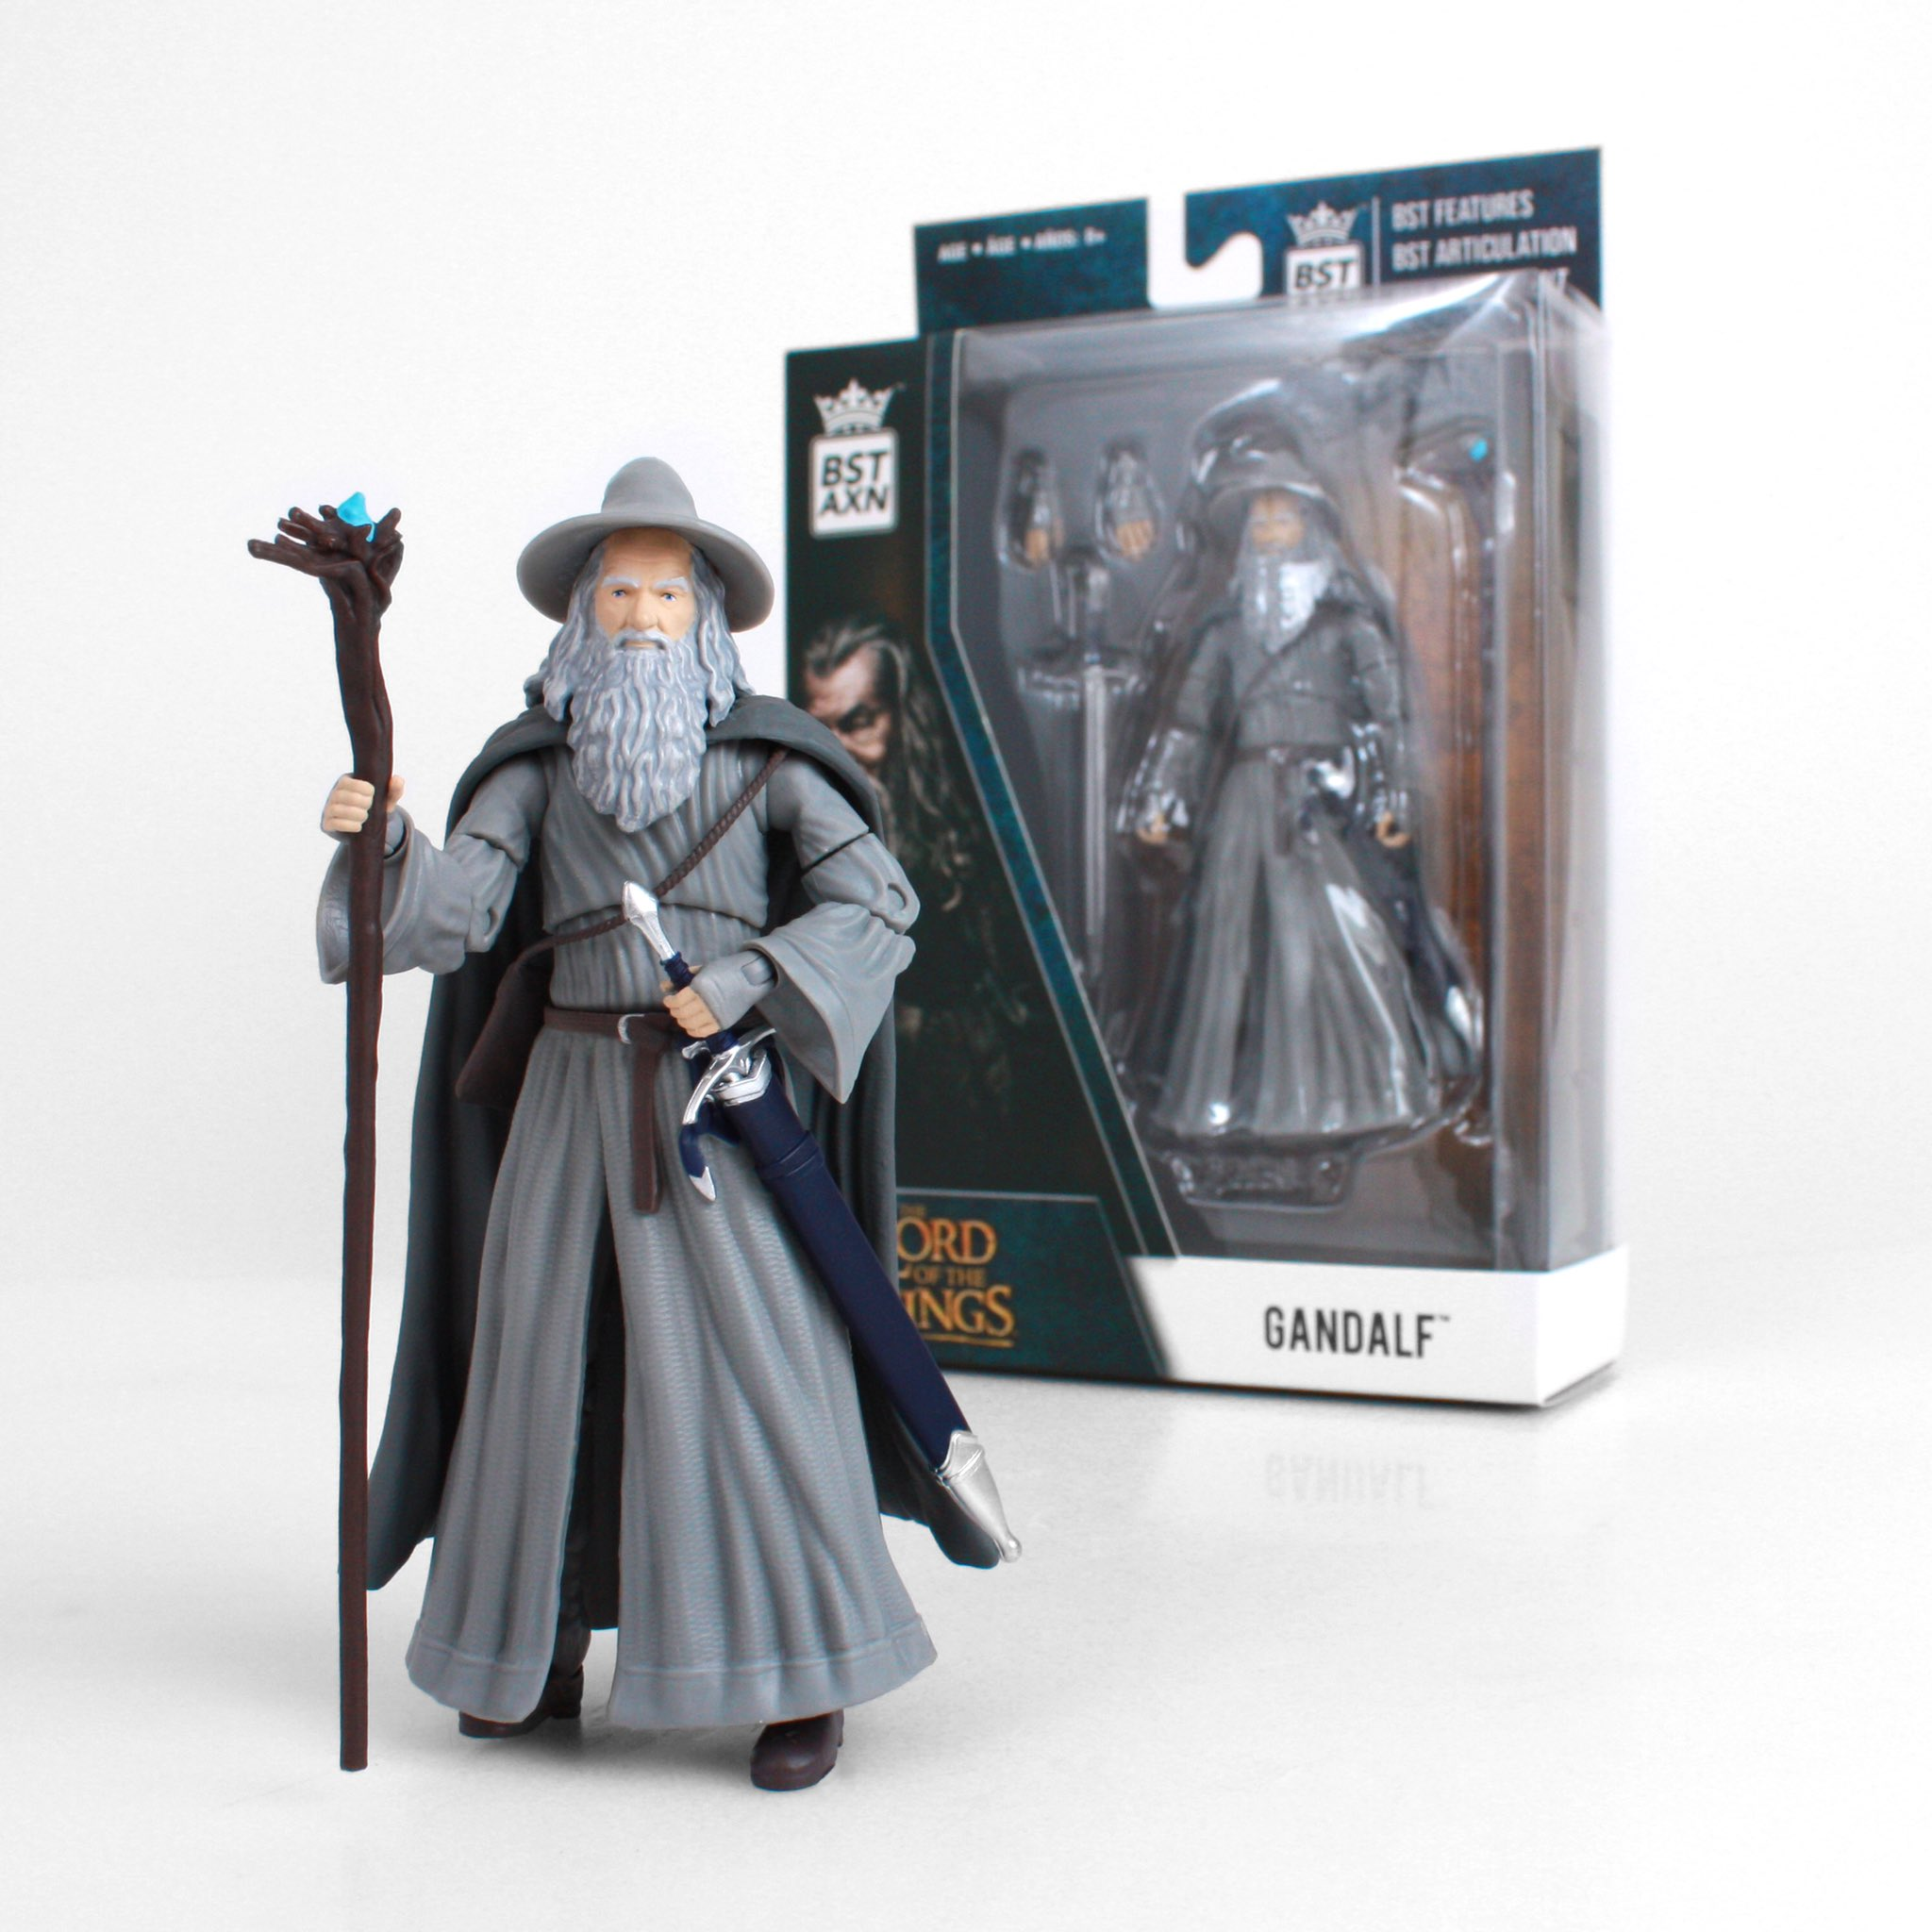 BST AXN Lord of the Rings Gandalf 003